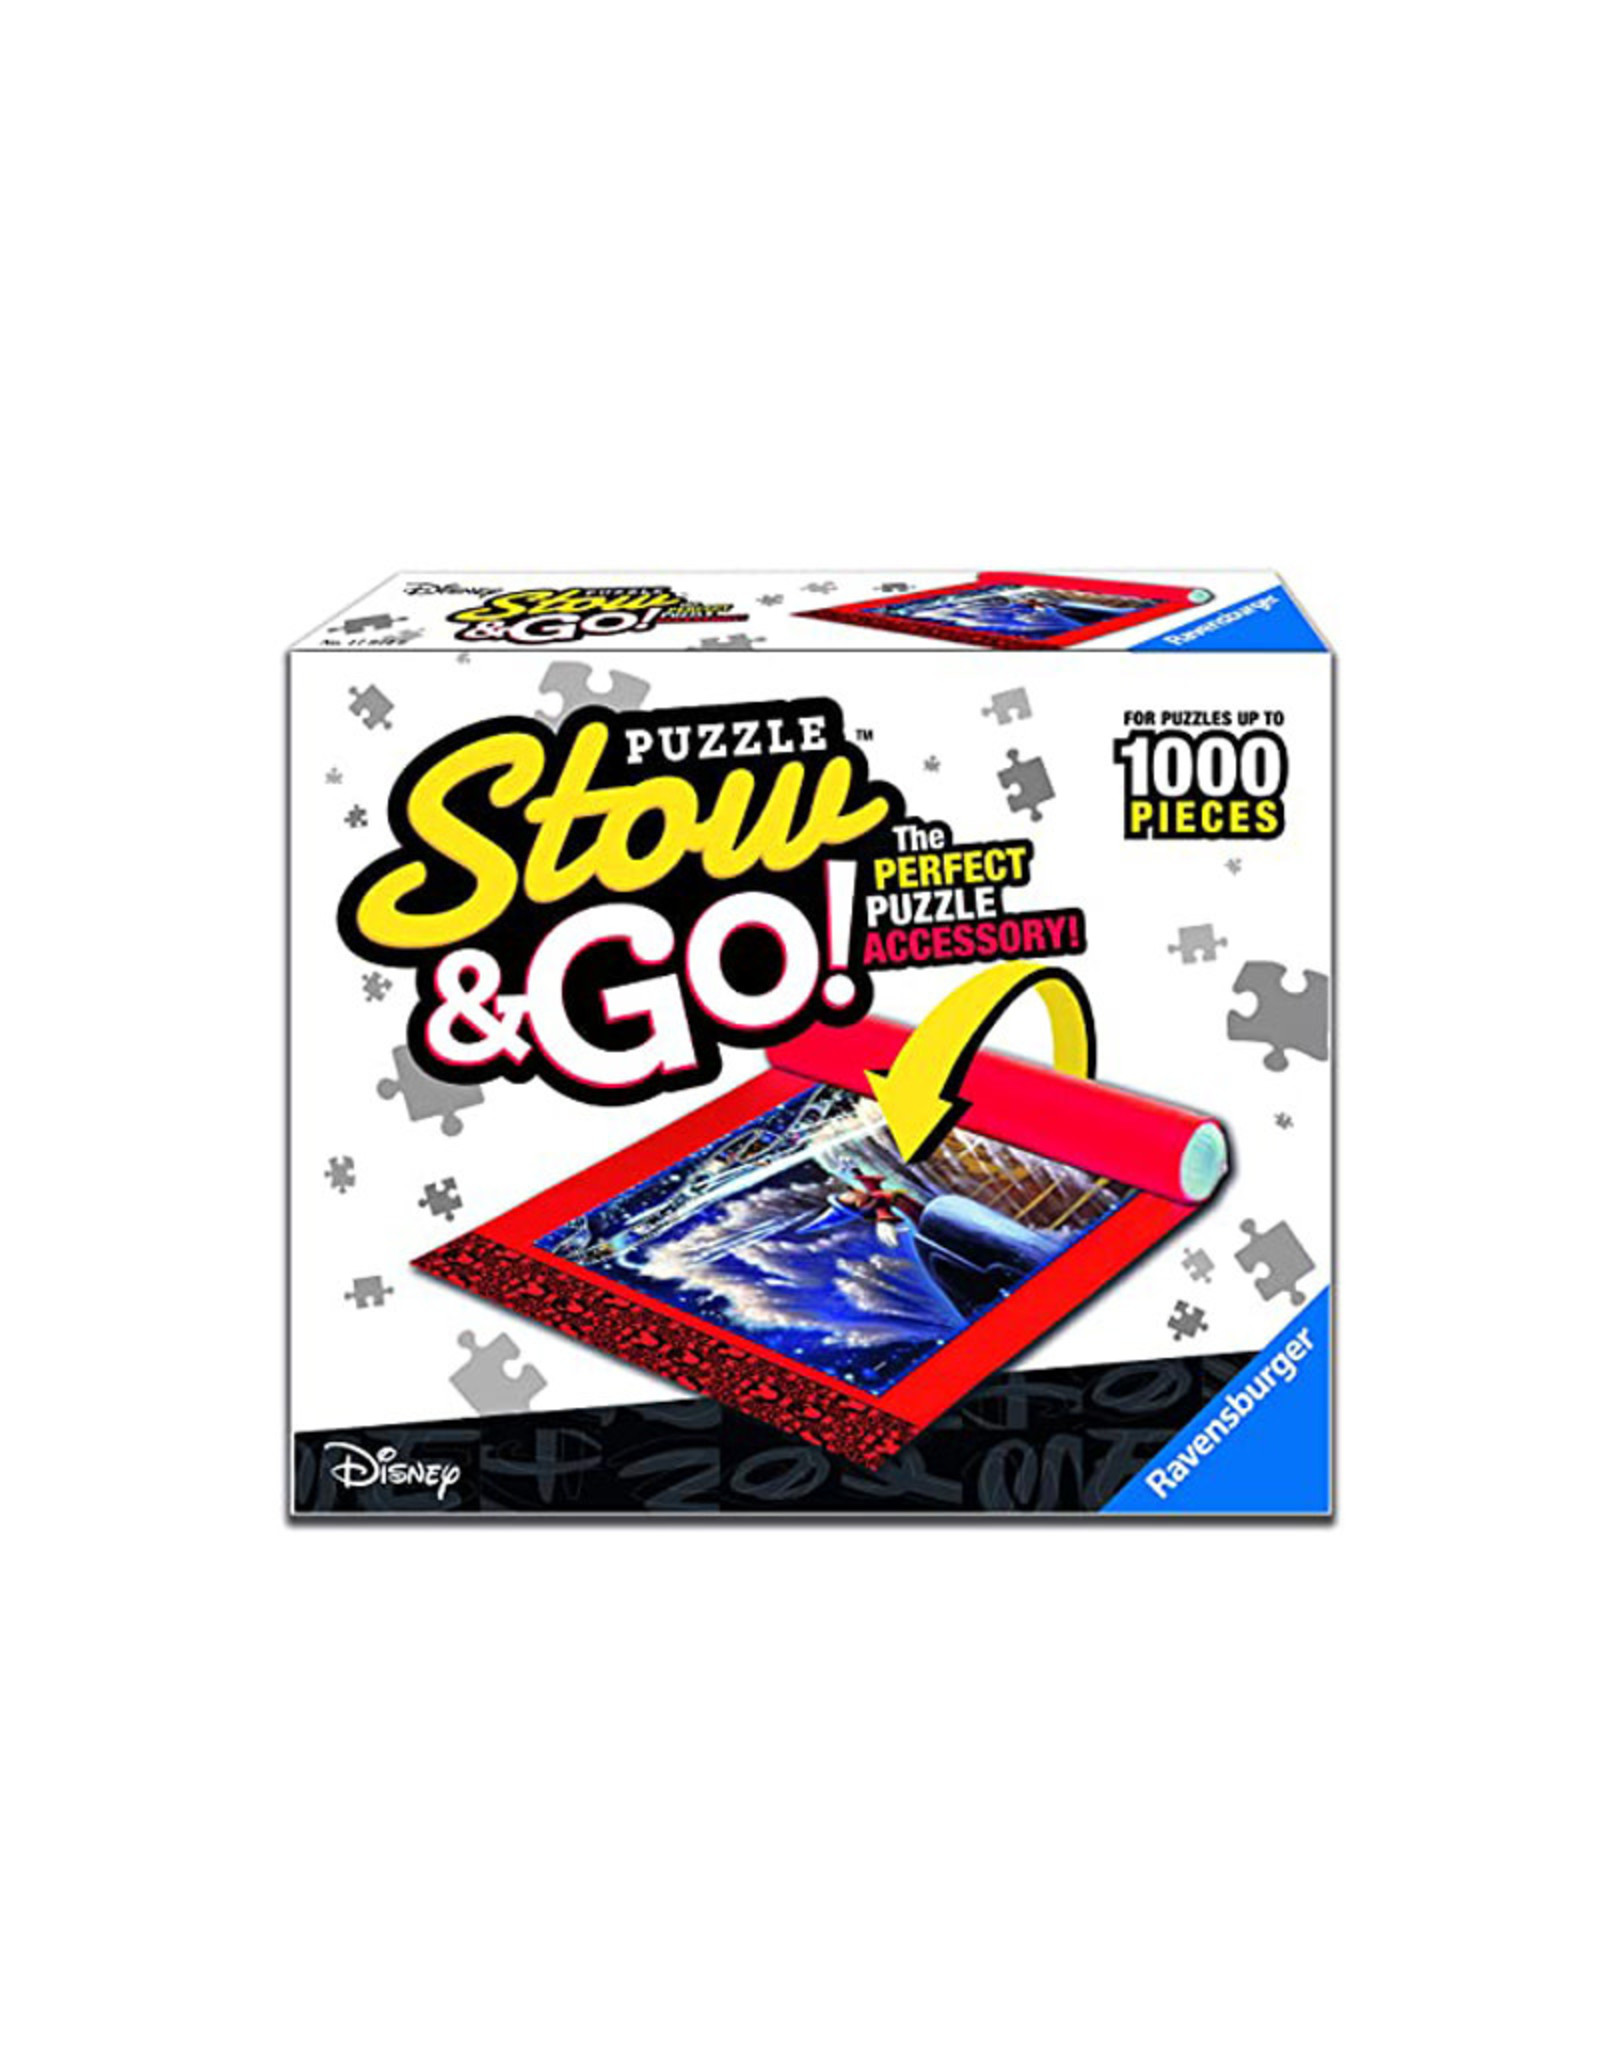 Ravensburger Mickey's Puzzle Stow & Go